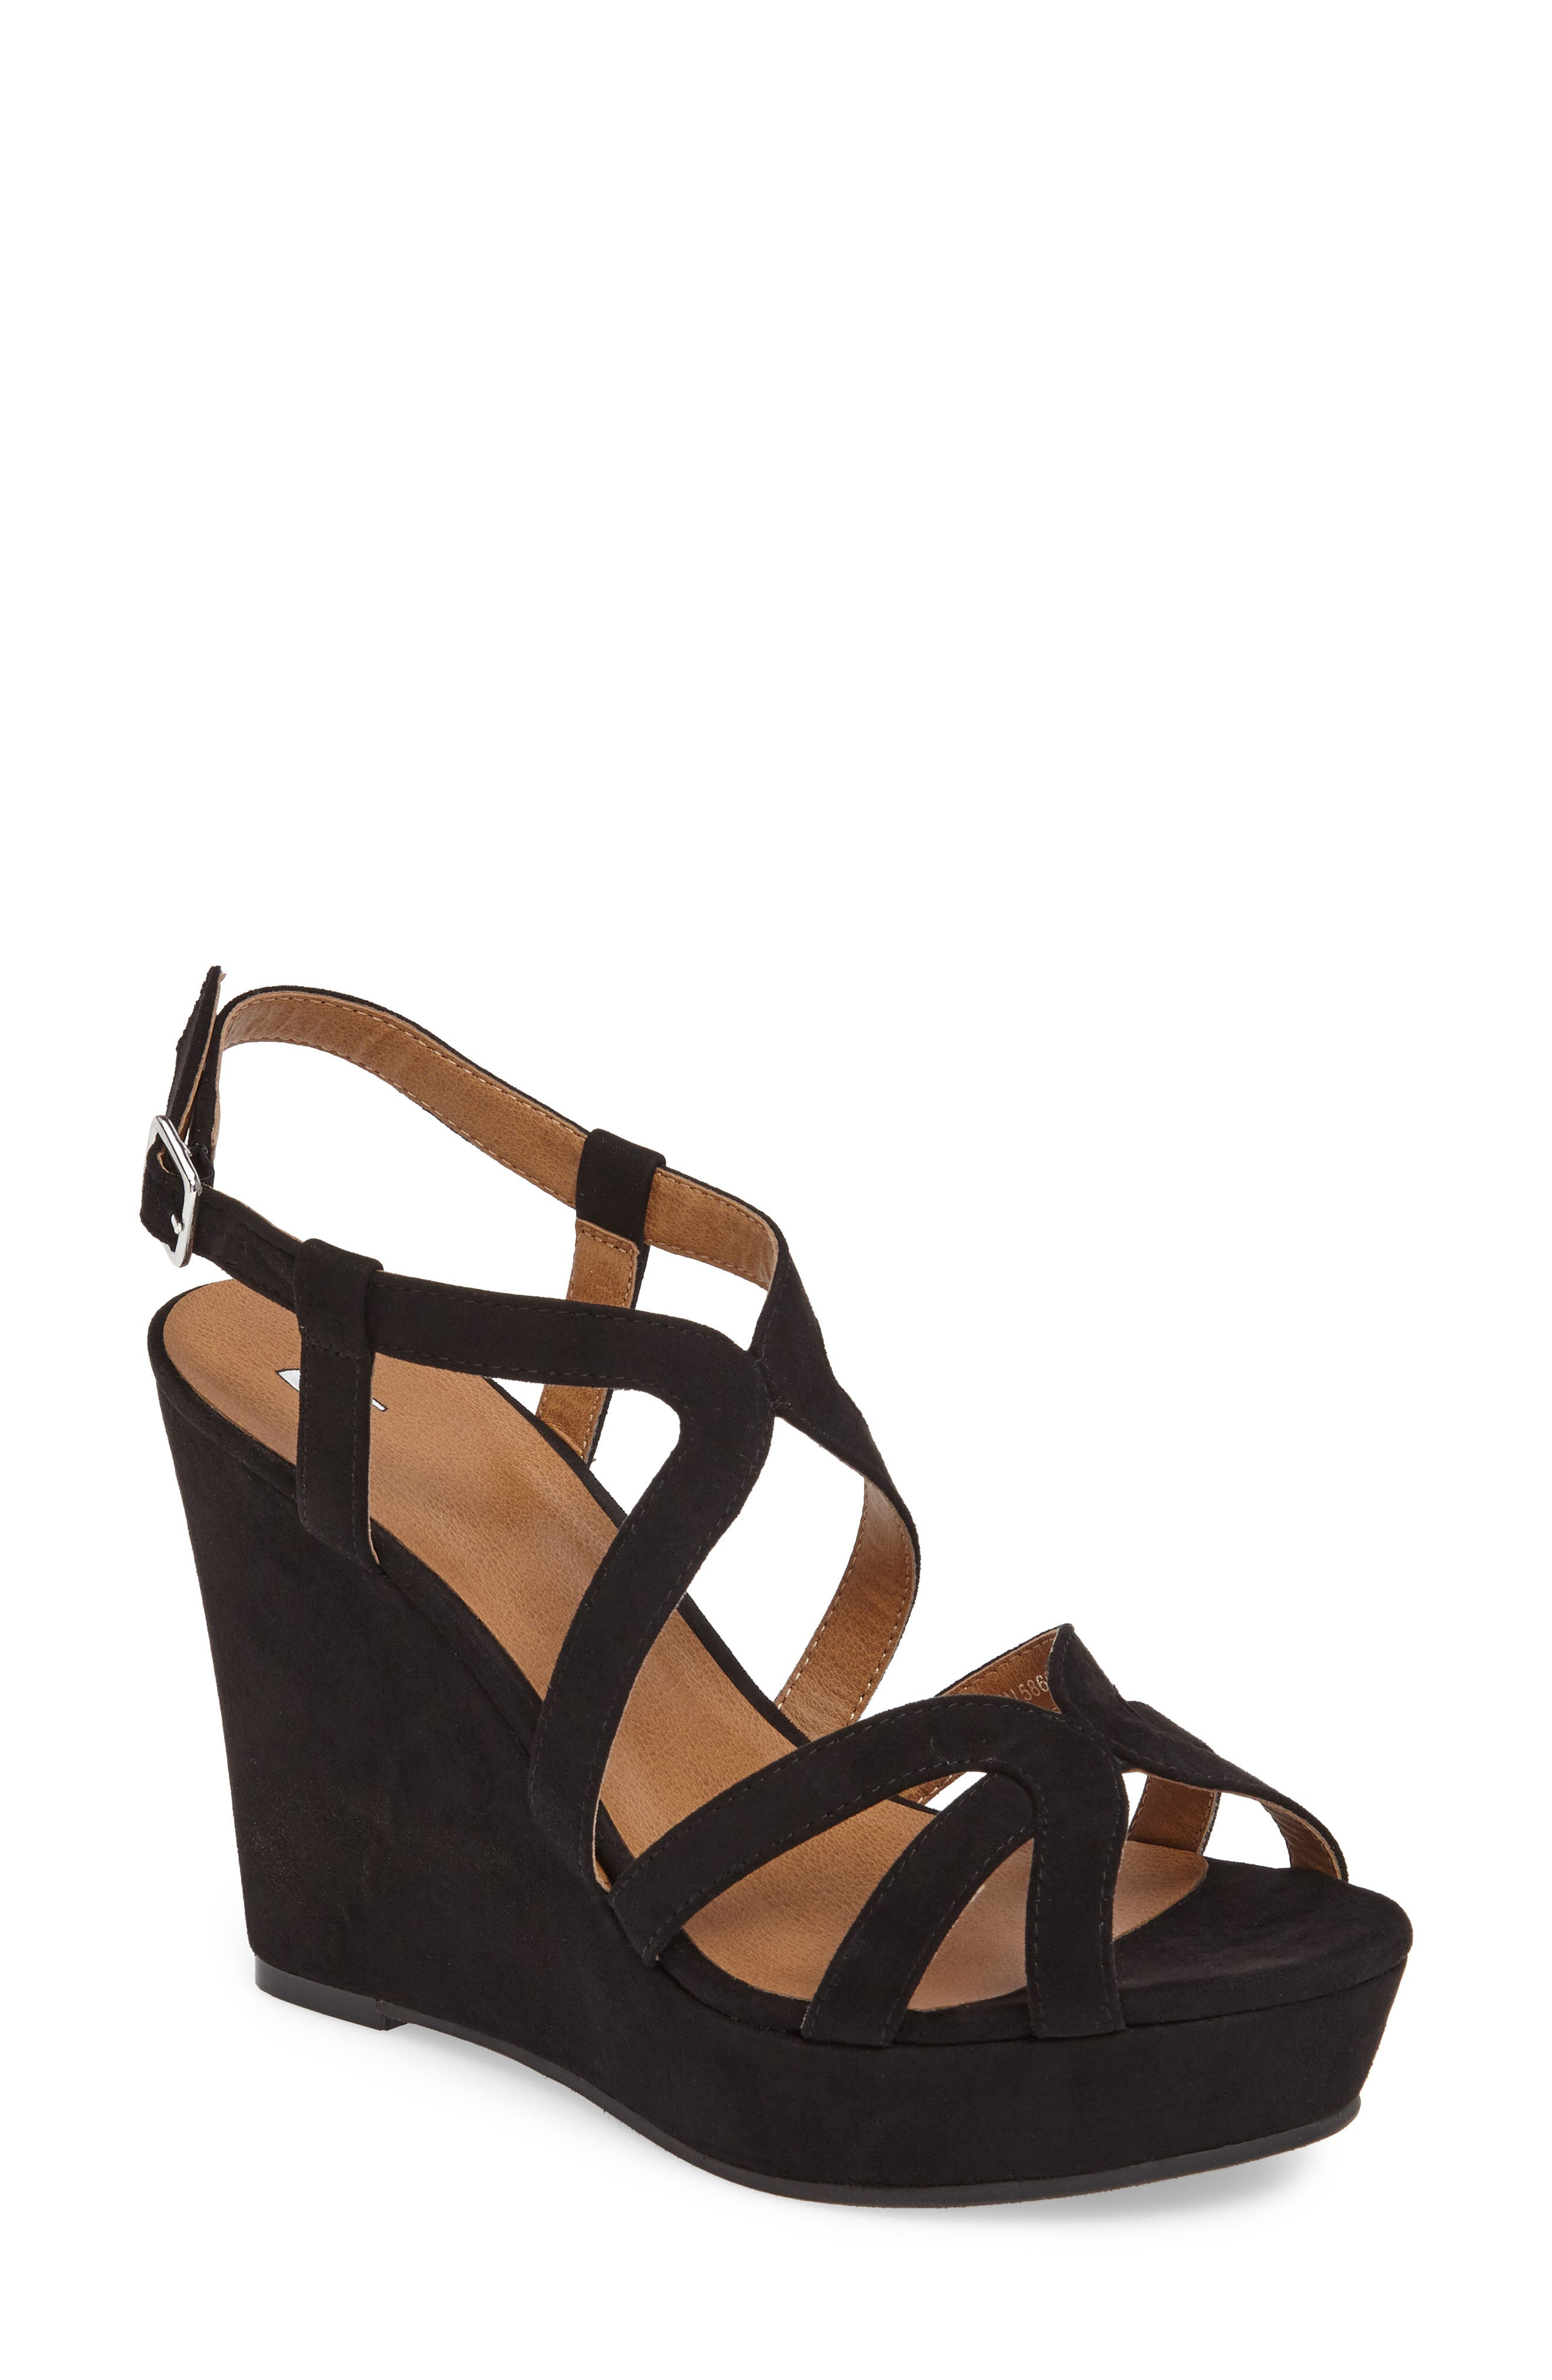 Sky Wedge Sandal,                         Main,                         color,